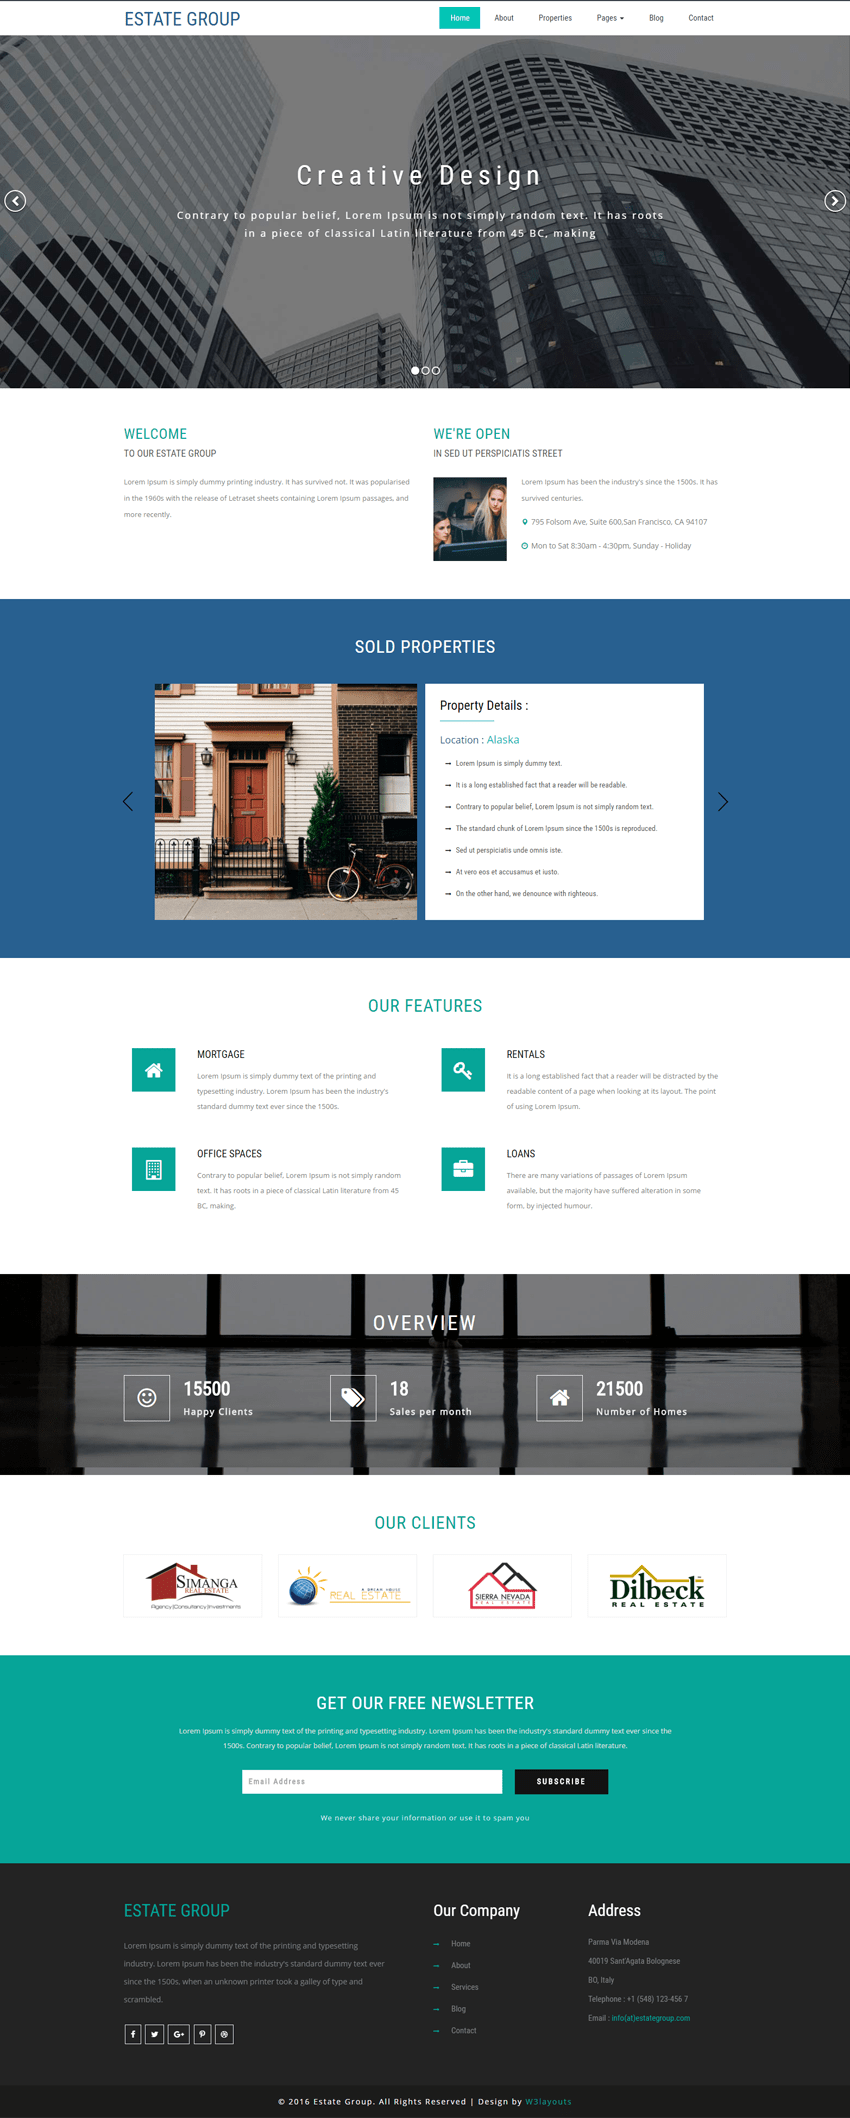 Estate Template | Estate Group A Real Estate Category Bootstrap Responsive Web Template